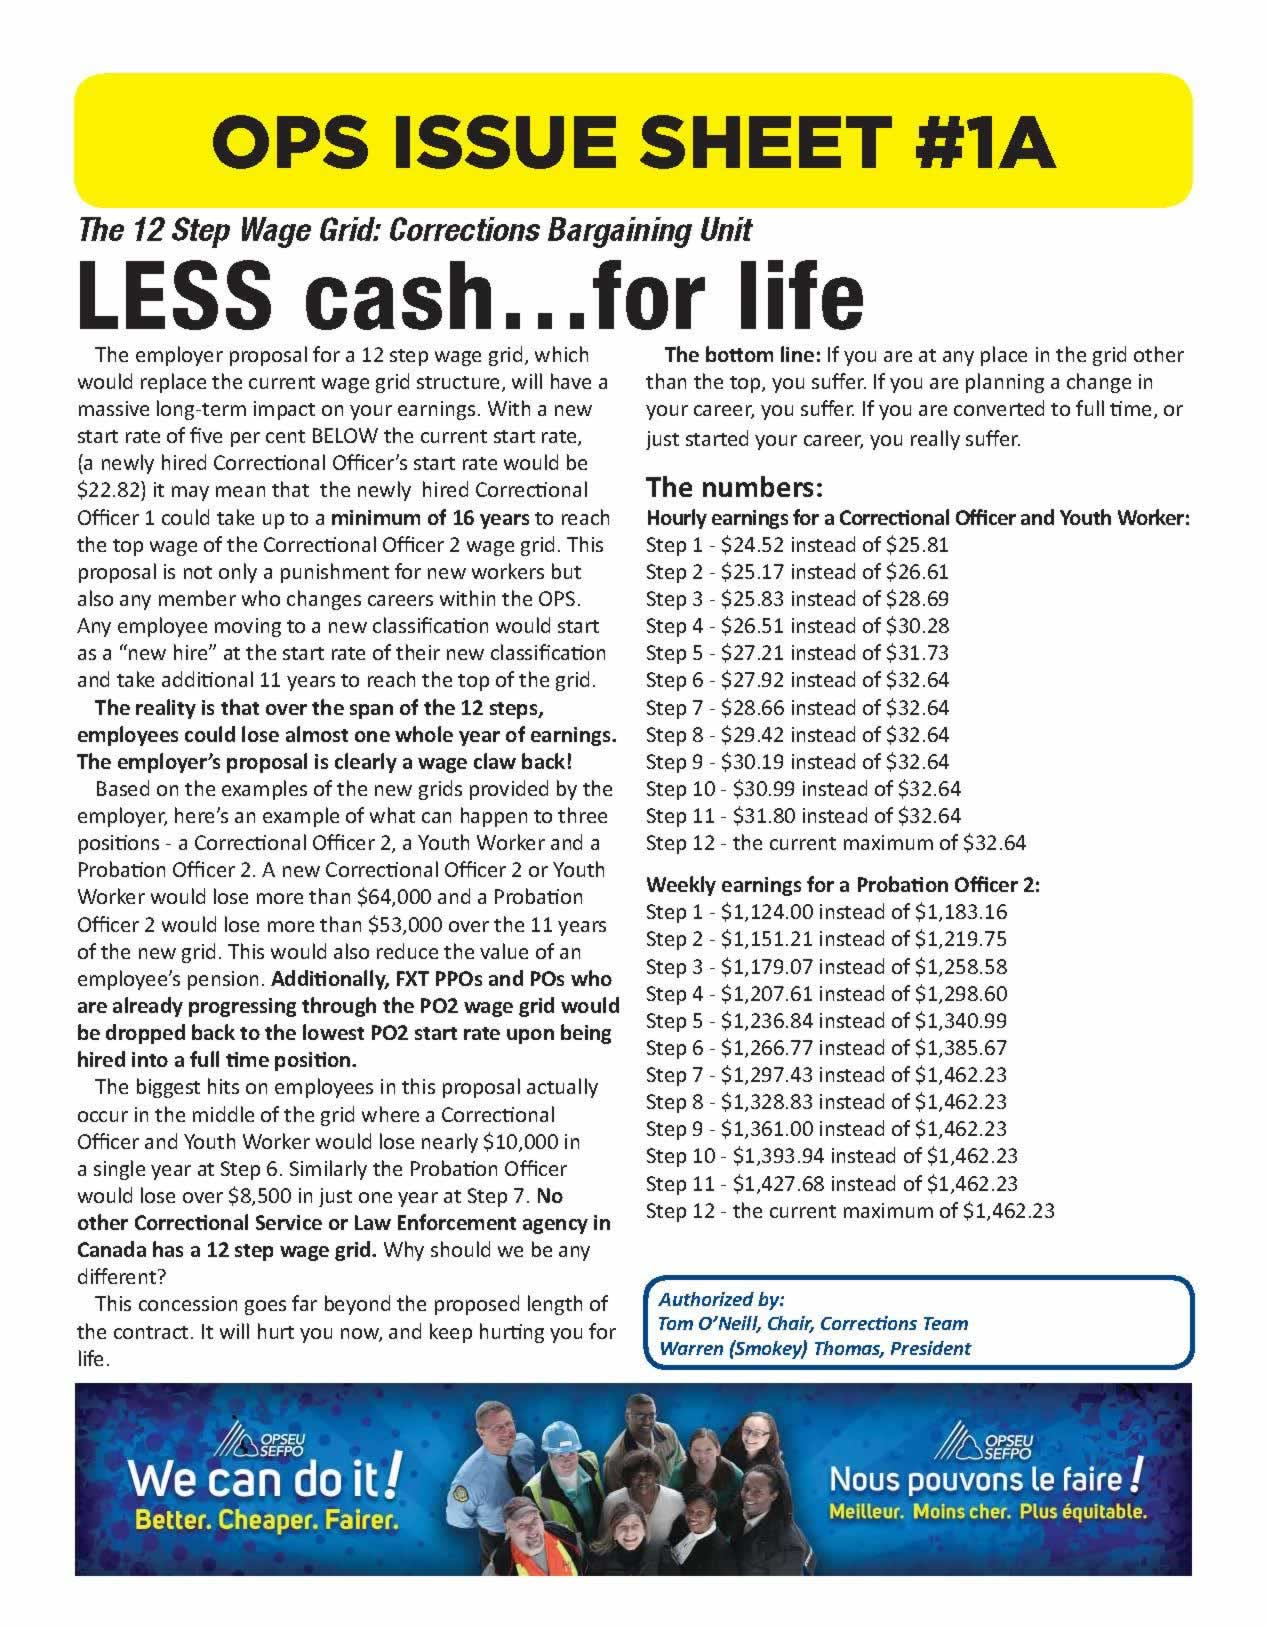 OPS Issue Sheet. The 12 step wage grid: corrections bargaining unit. Less cash... for life